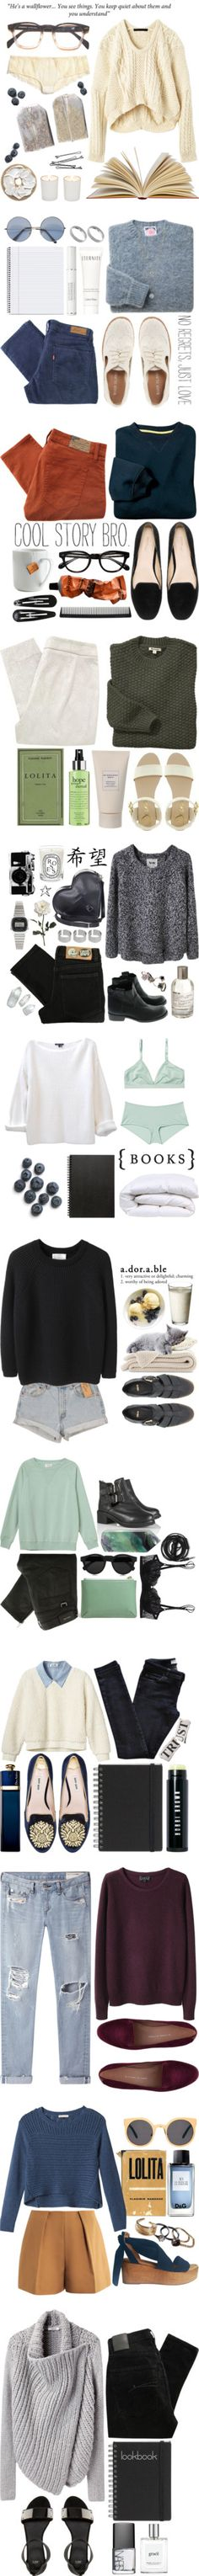 Sweaters! by ctodtims on Polyvore featuring Witchery, BOBBY, Madewell, Marc by Marc Jacobs, Calvin Klein, Levi's, River Island, Dorothy Perkins, Christian Dior and Kiss The Sky